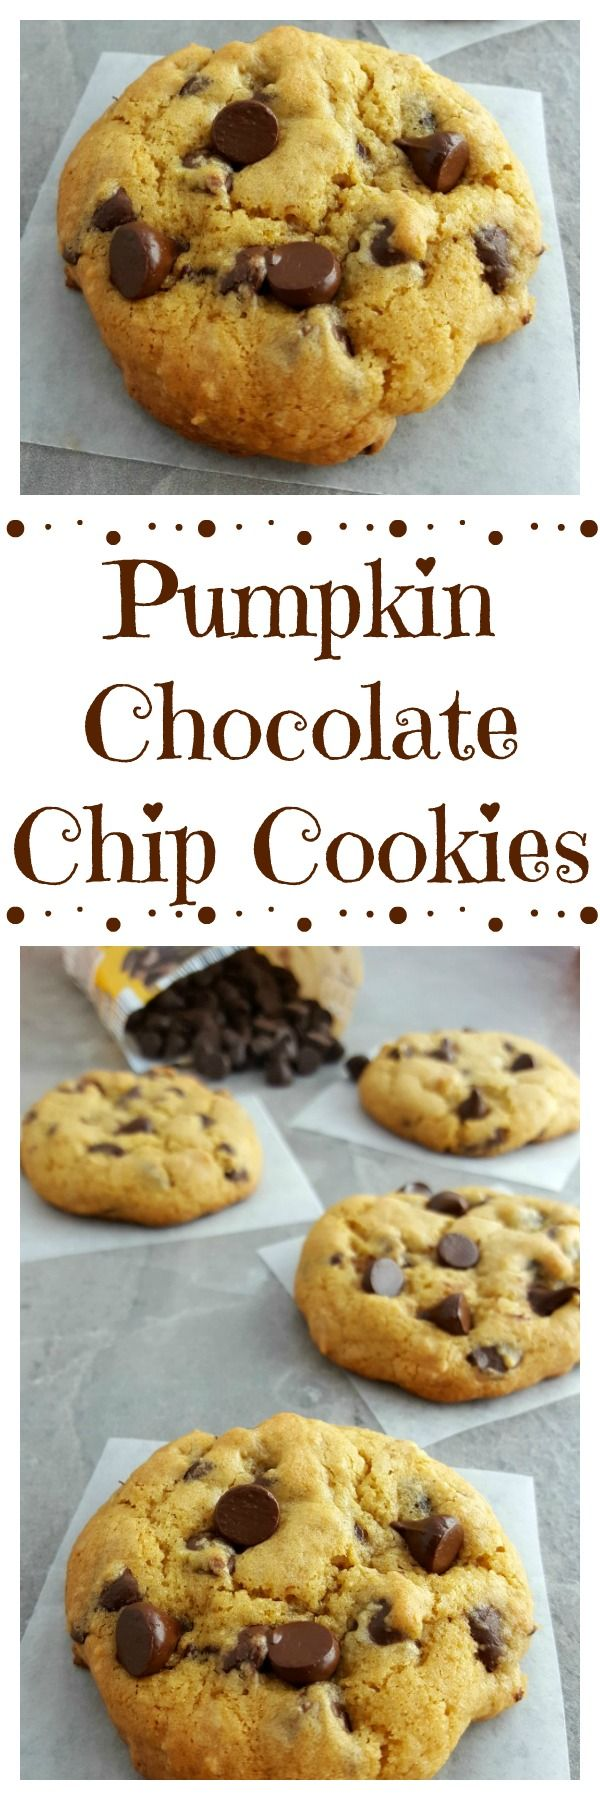 Pumpkin Chocolate Chip Cookies These delicious easy to make chewy Pumpkin Chocolate Chip Cookies can be made with Gluten Free Ingredients Theyre sure to be the hit of you...